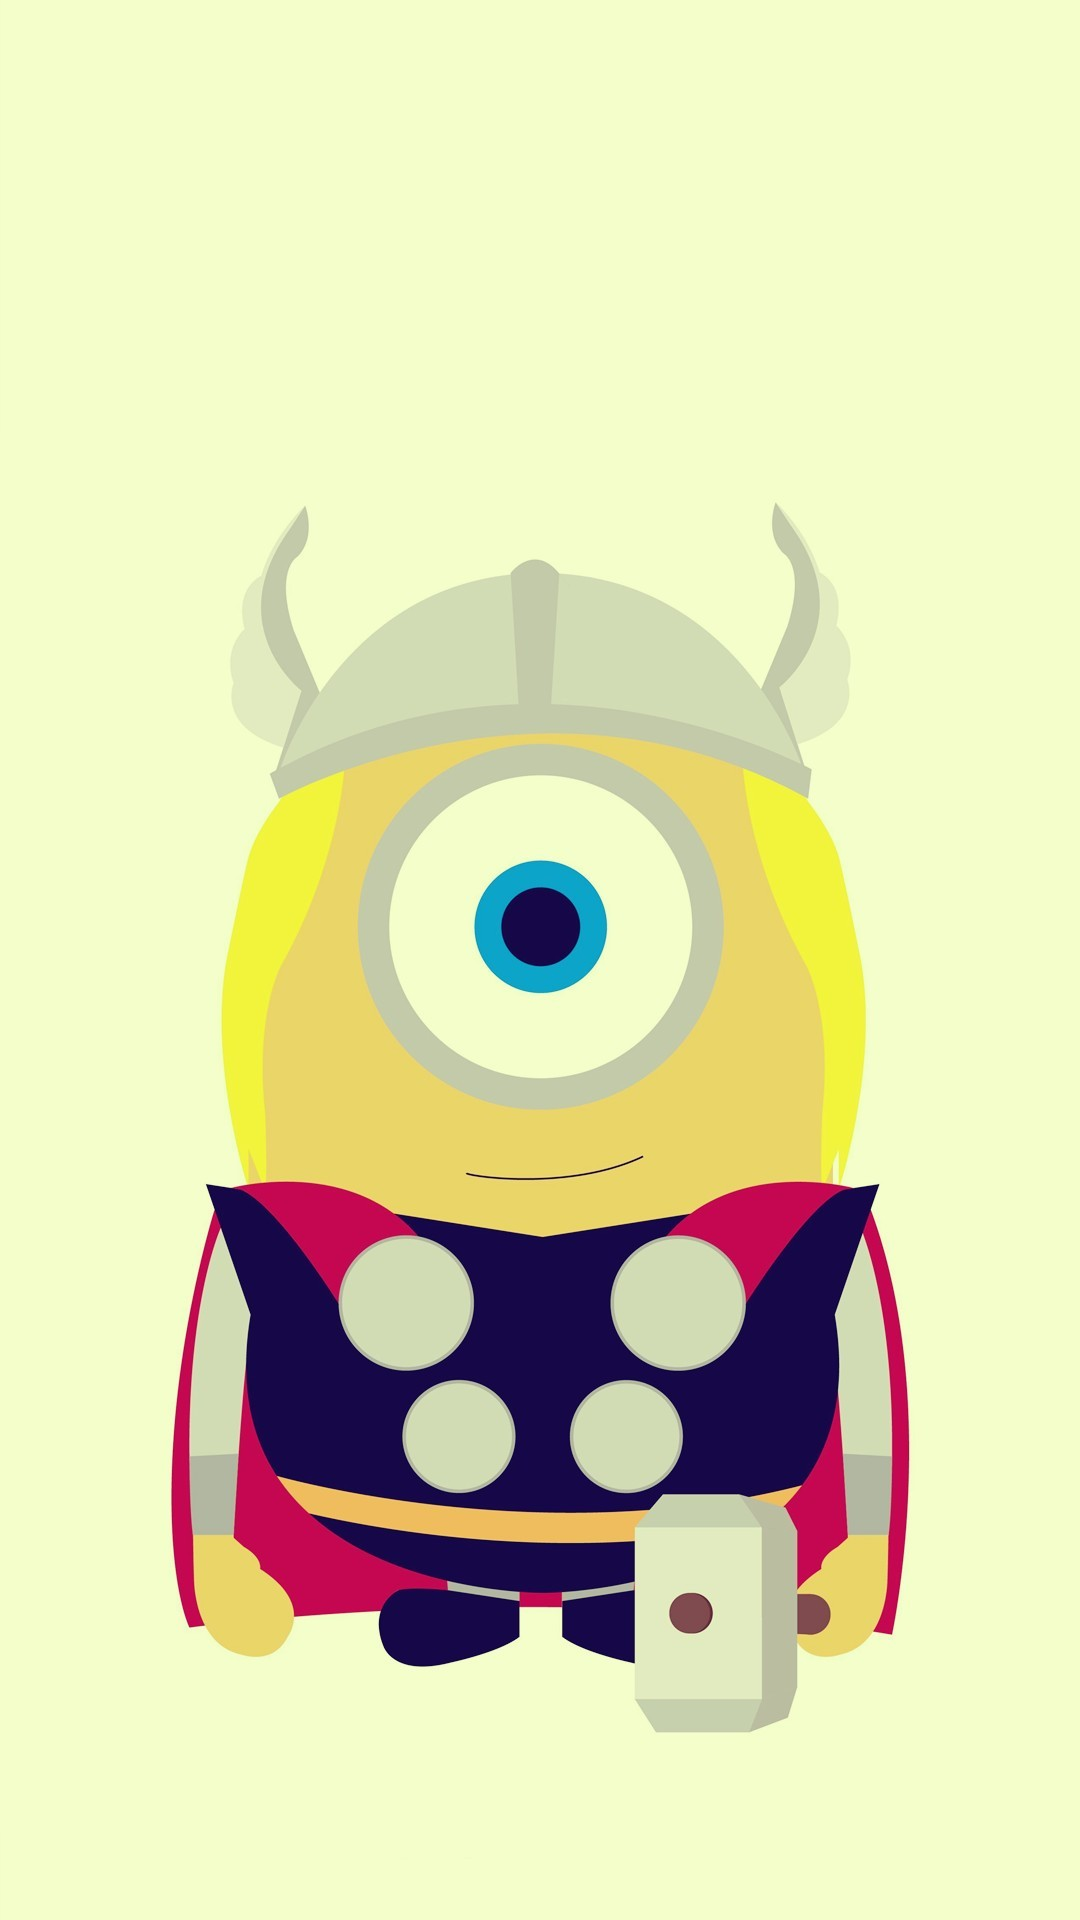 1080x1920 Funny Thor Minion Avengers iphone 6 plus wallpaper HD - 2014 Halloween,  Despicable Me #